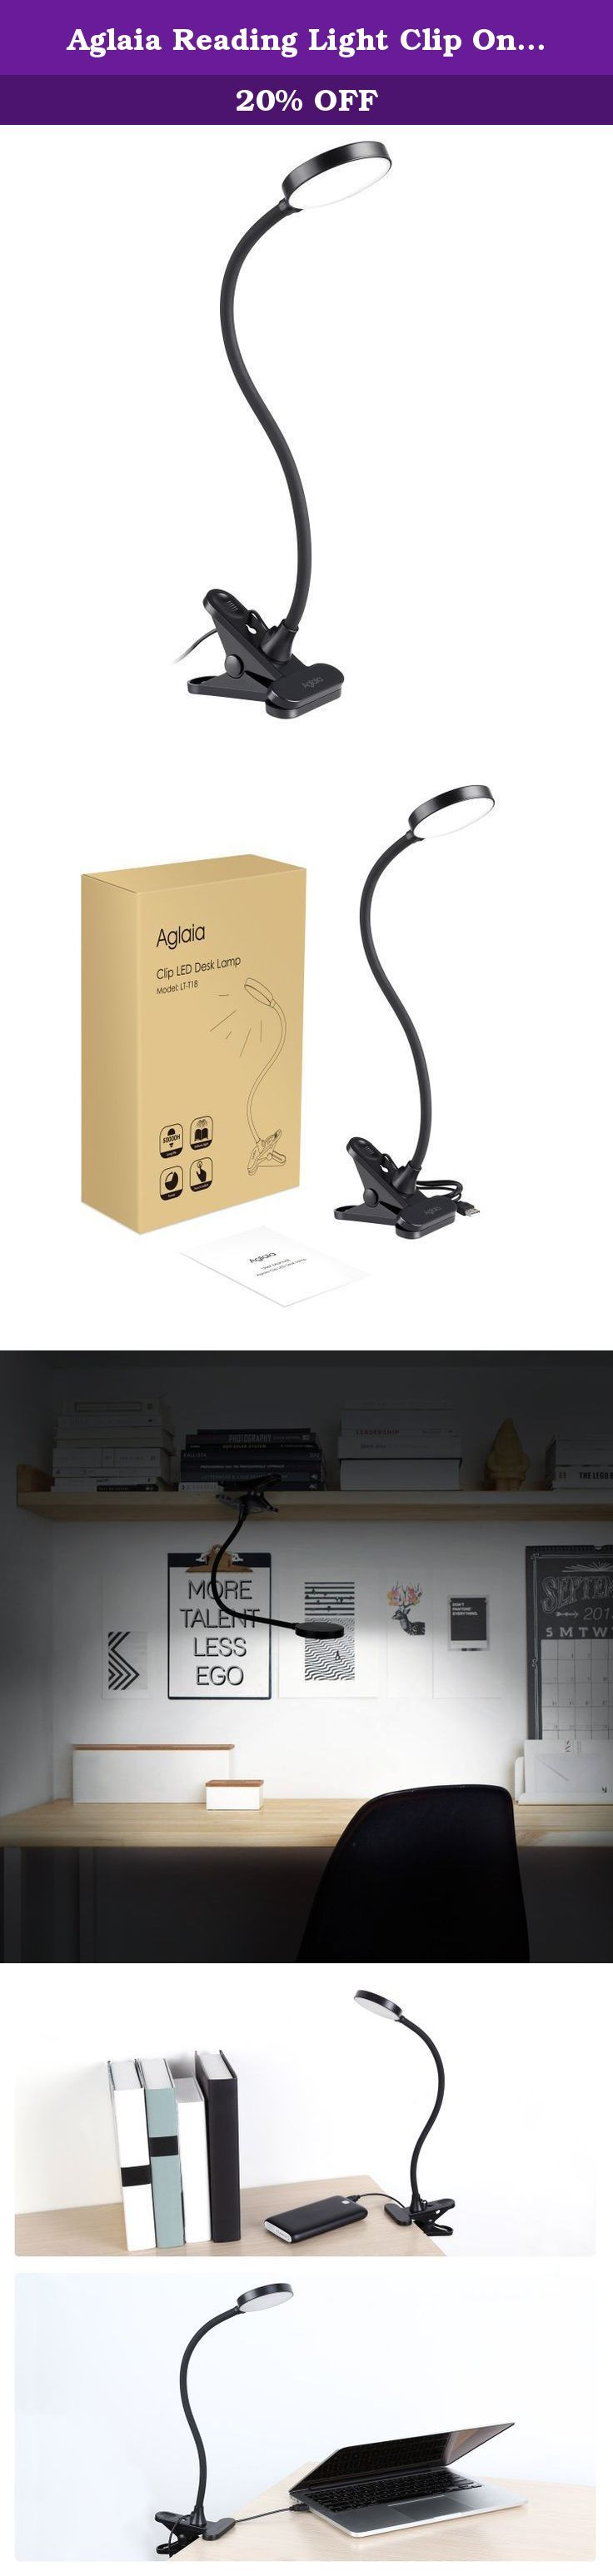 Aglaia Reading Light Clip On 3W, Eye Care Desk Lamp 15 LEDs with Touch Control and Gooseneck, USB Powered for Writing Studying and Working (Black). Touch Control This LED clamp desk lamp with touch control can be easily controlled by touching. Just tap the power button on the back of the lamp head to turn on / turn off the light . Energy Saving Desk Lamp The LED desk lamp with incredibly power-efficient components and design, which helps you save more energy and cost less electricity…